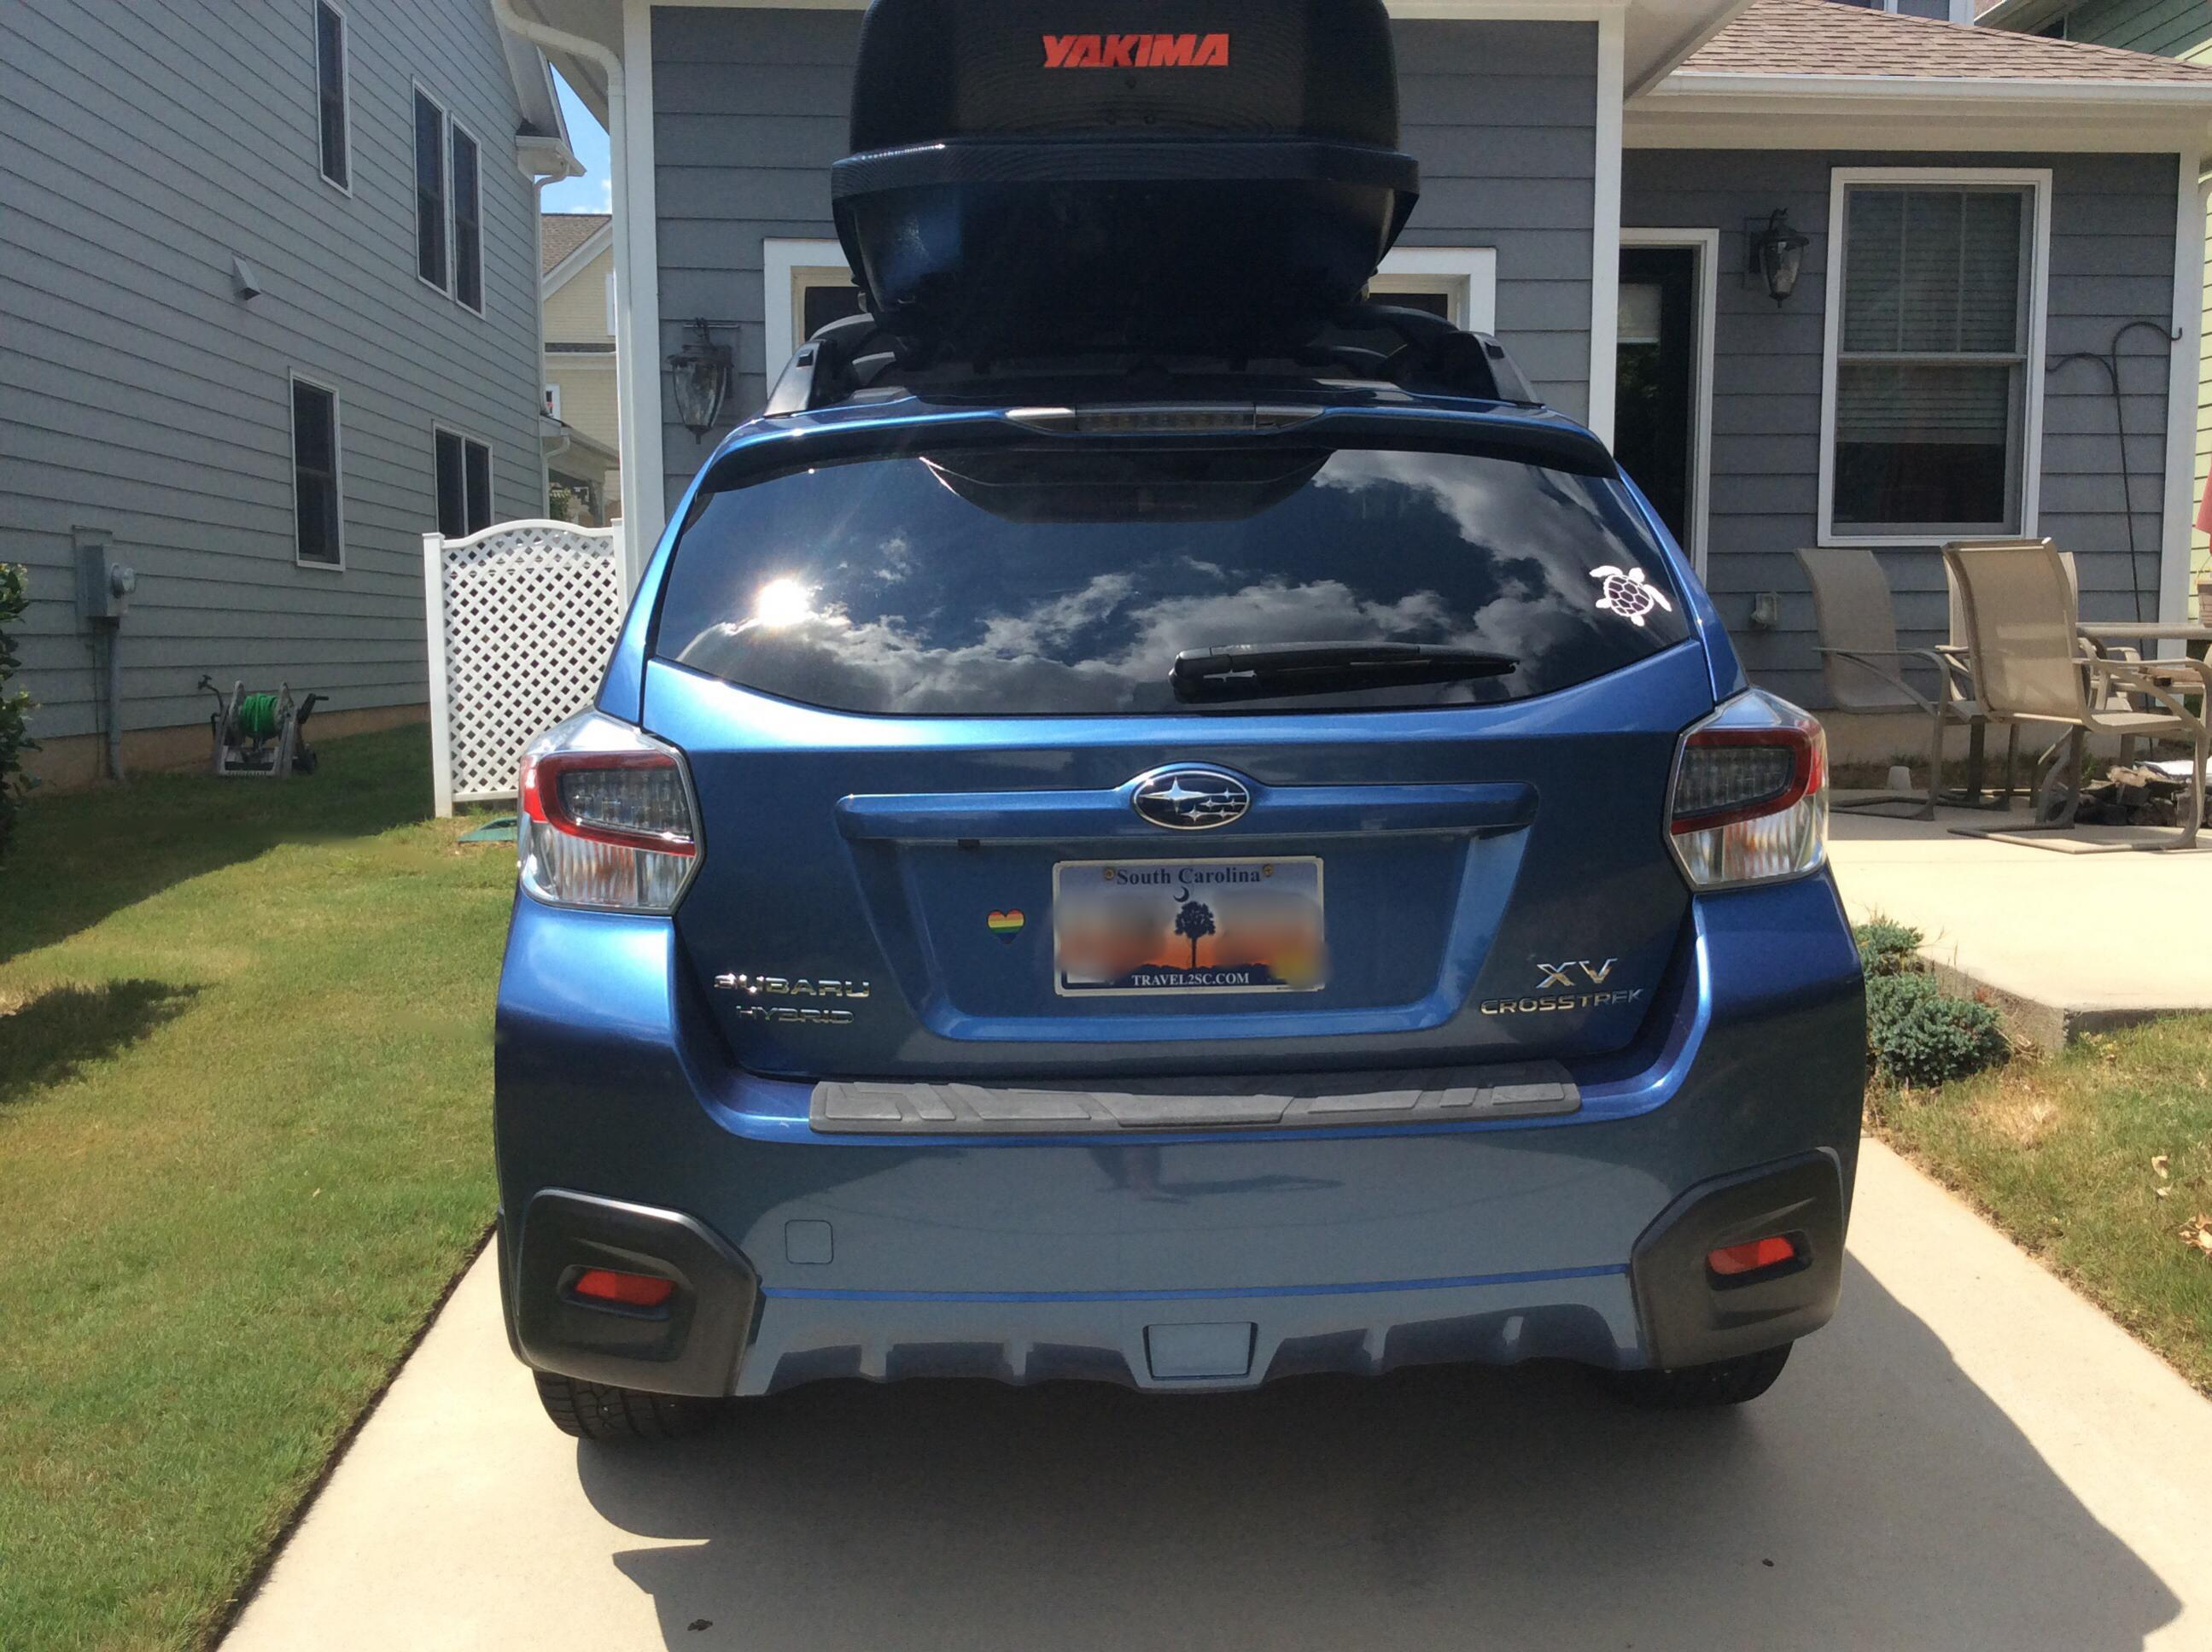 D Best Cargo Box Img in addition S L further D Clean Your Sunroof Drain Hose Img also Oilseparatorplate further Subaru Wrx Sti Dv Nyc A. on 01 subaru impreza outback